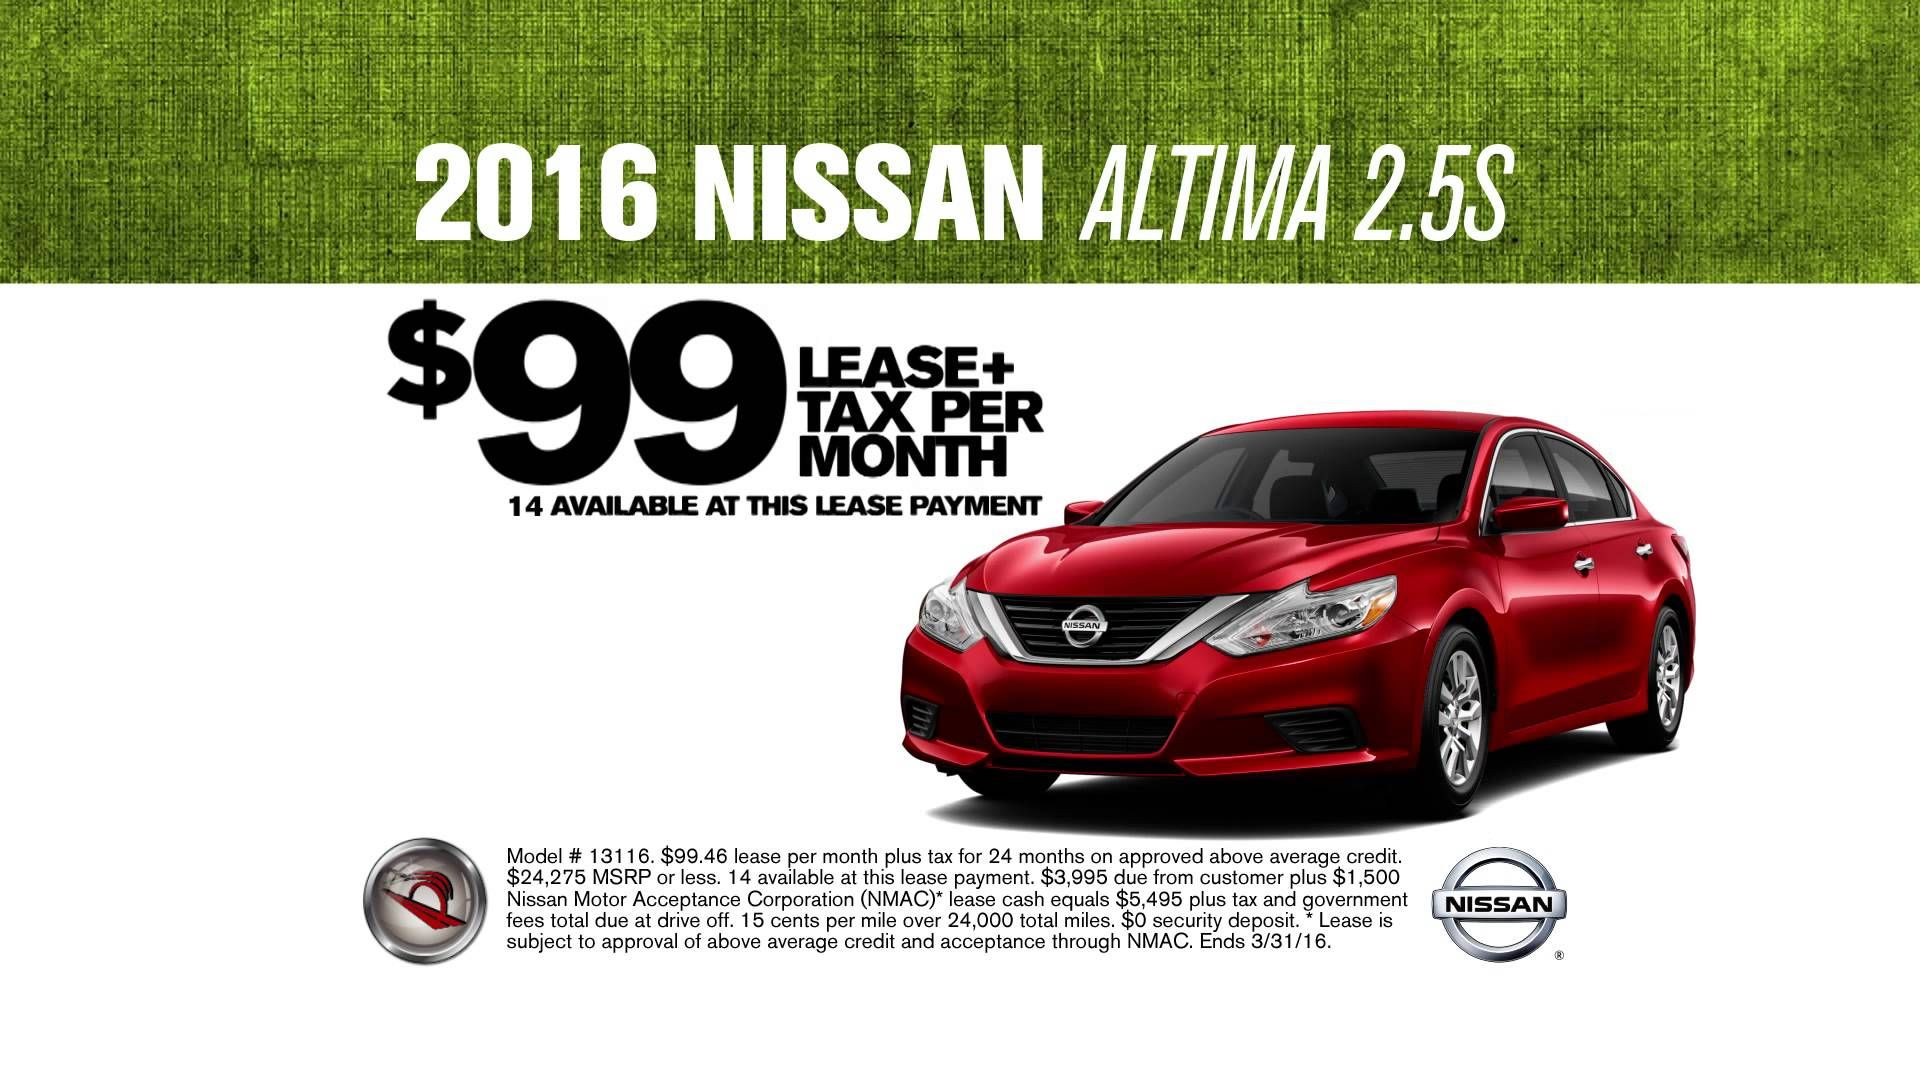 WHO'S GOING TO OPENING DAY? Wouldn't it be great to take the family in a new 2016 Nissan Altima for ONLY $99 LEASE PER MONTH!